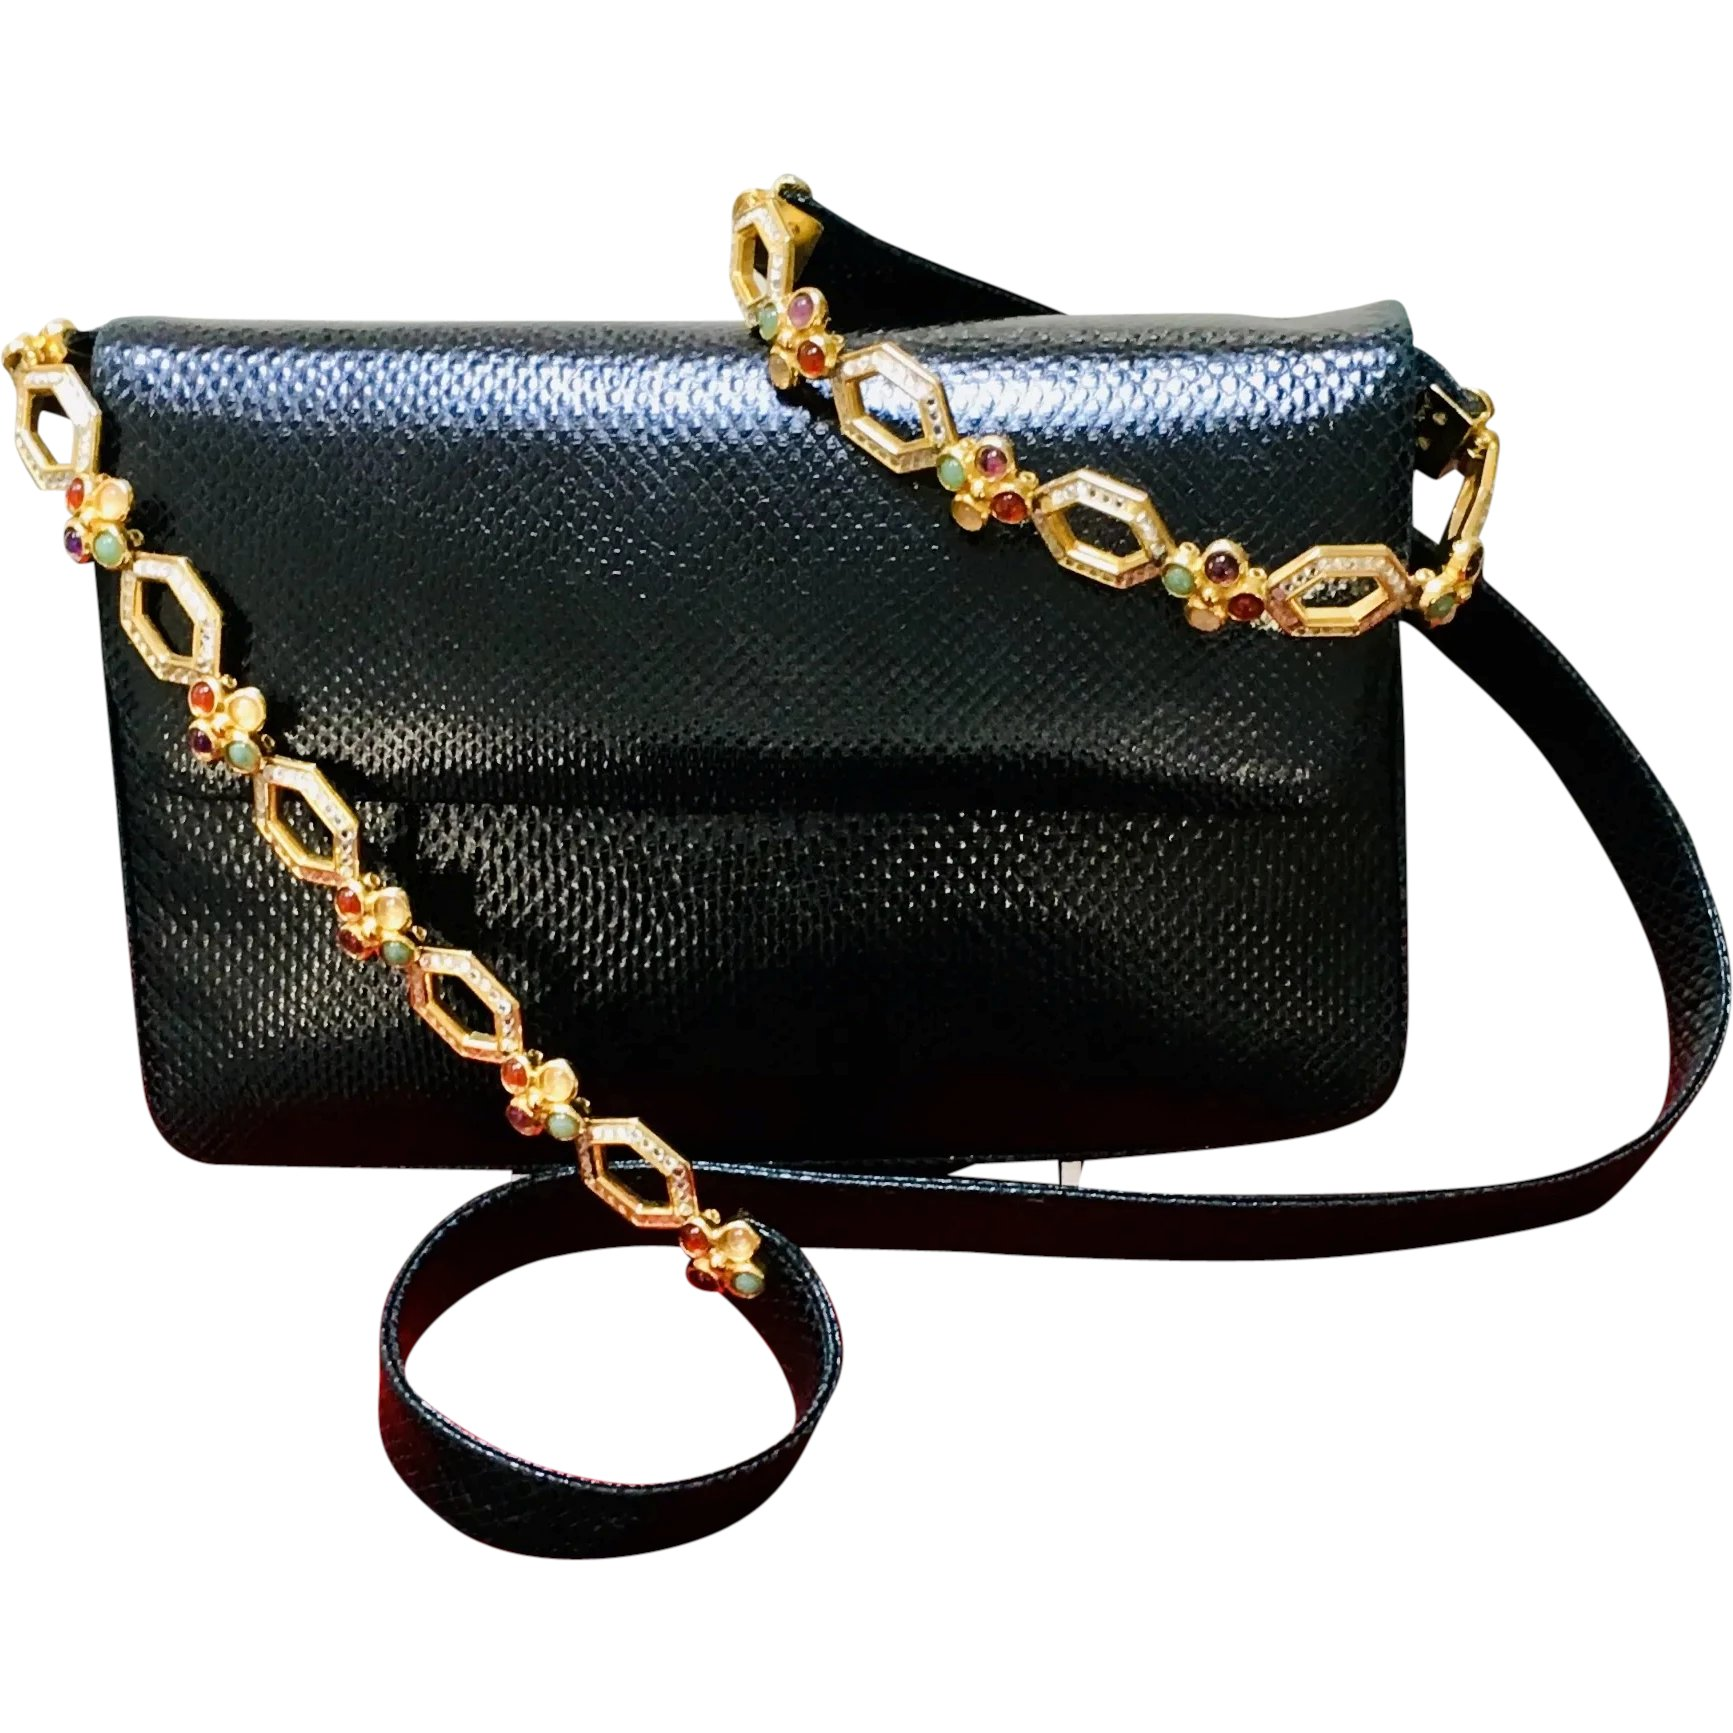 Vintage Leiber Karung Skin Shoulder Bag With Swarovski Crystals